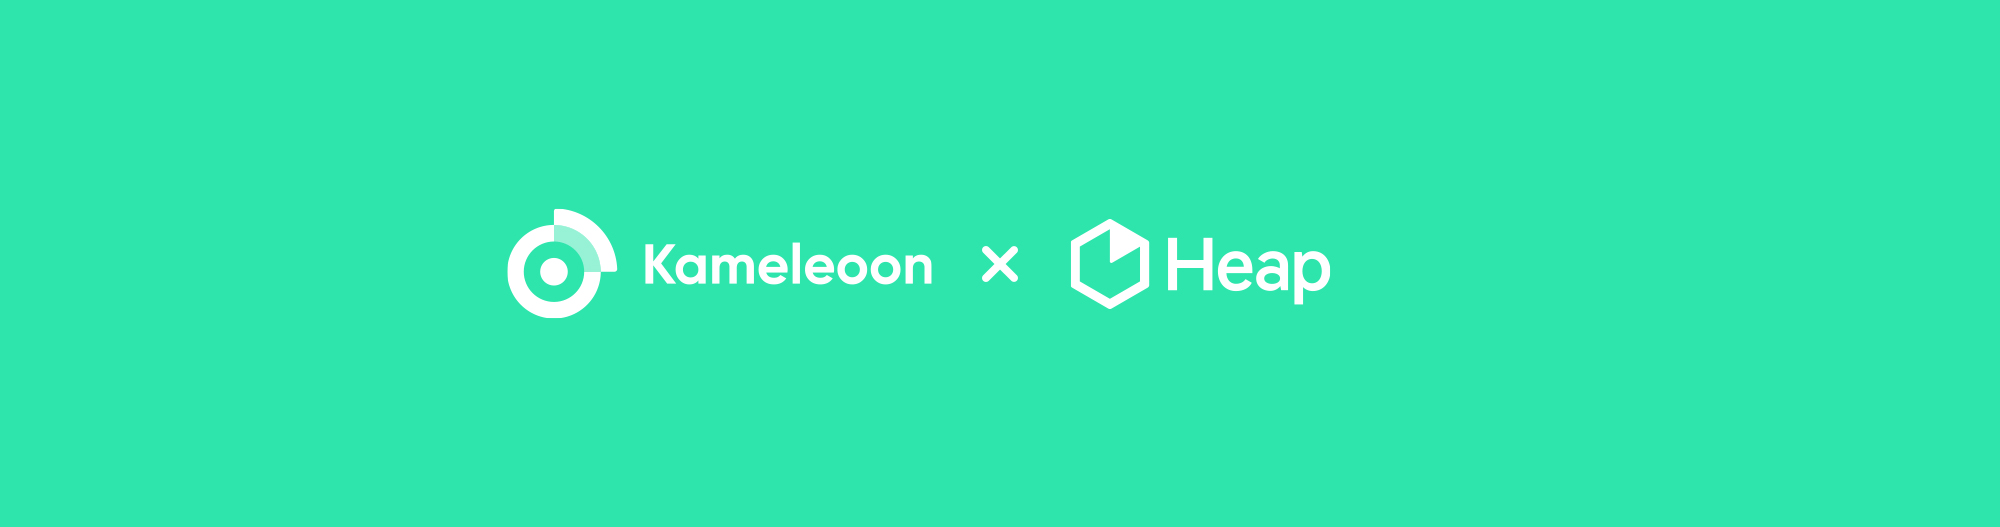 Kameleoon Heap integration